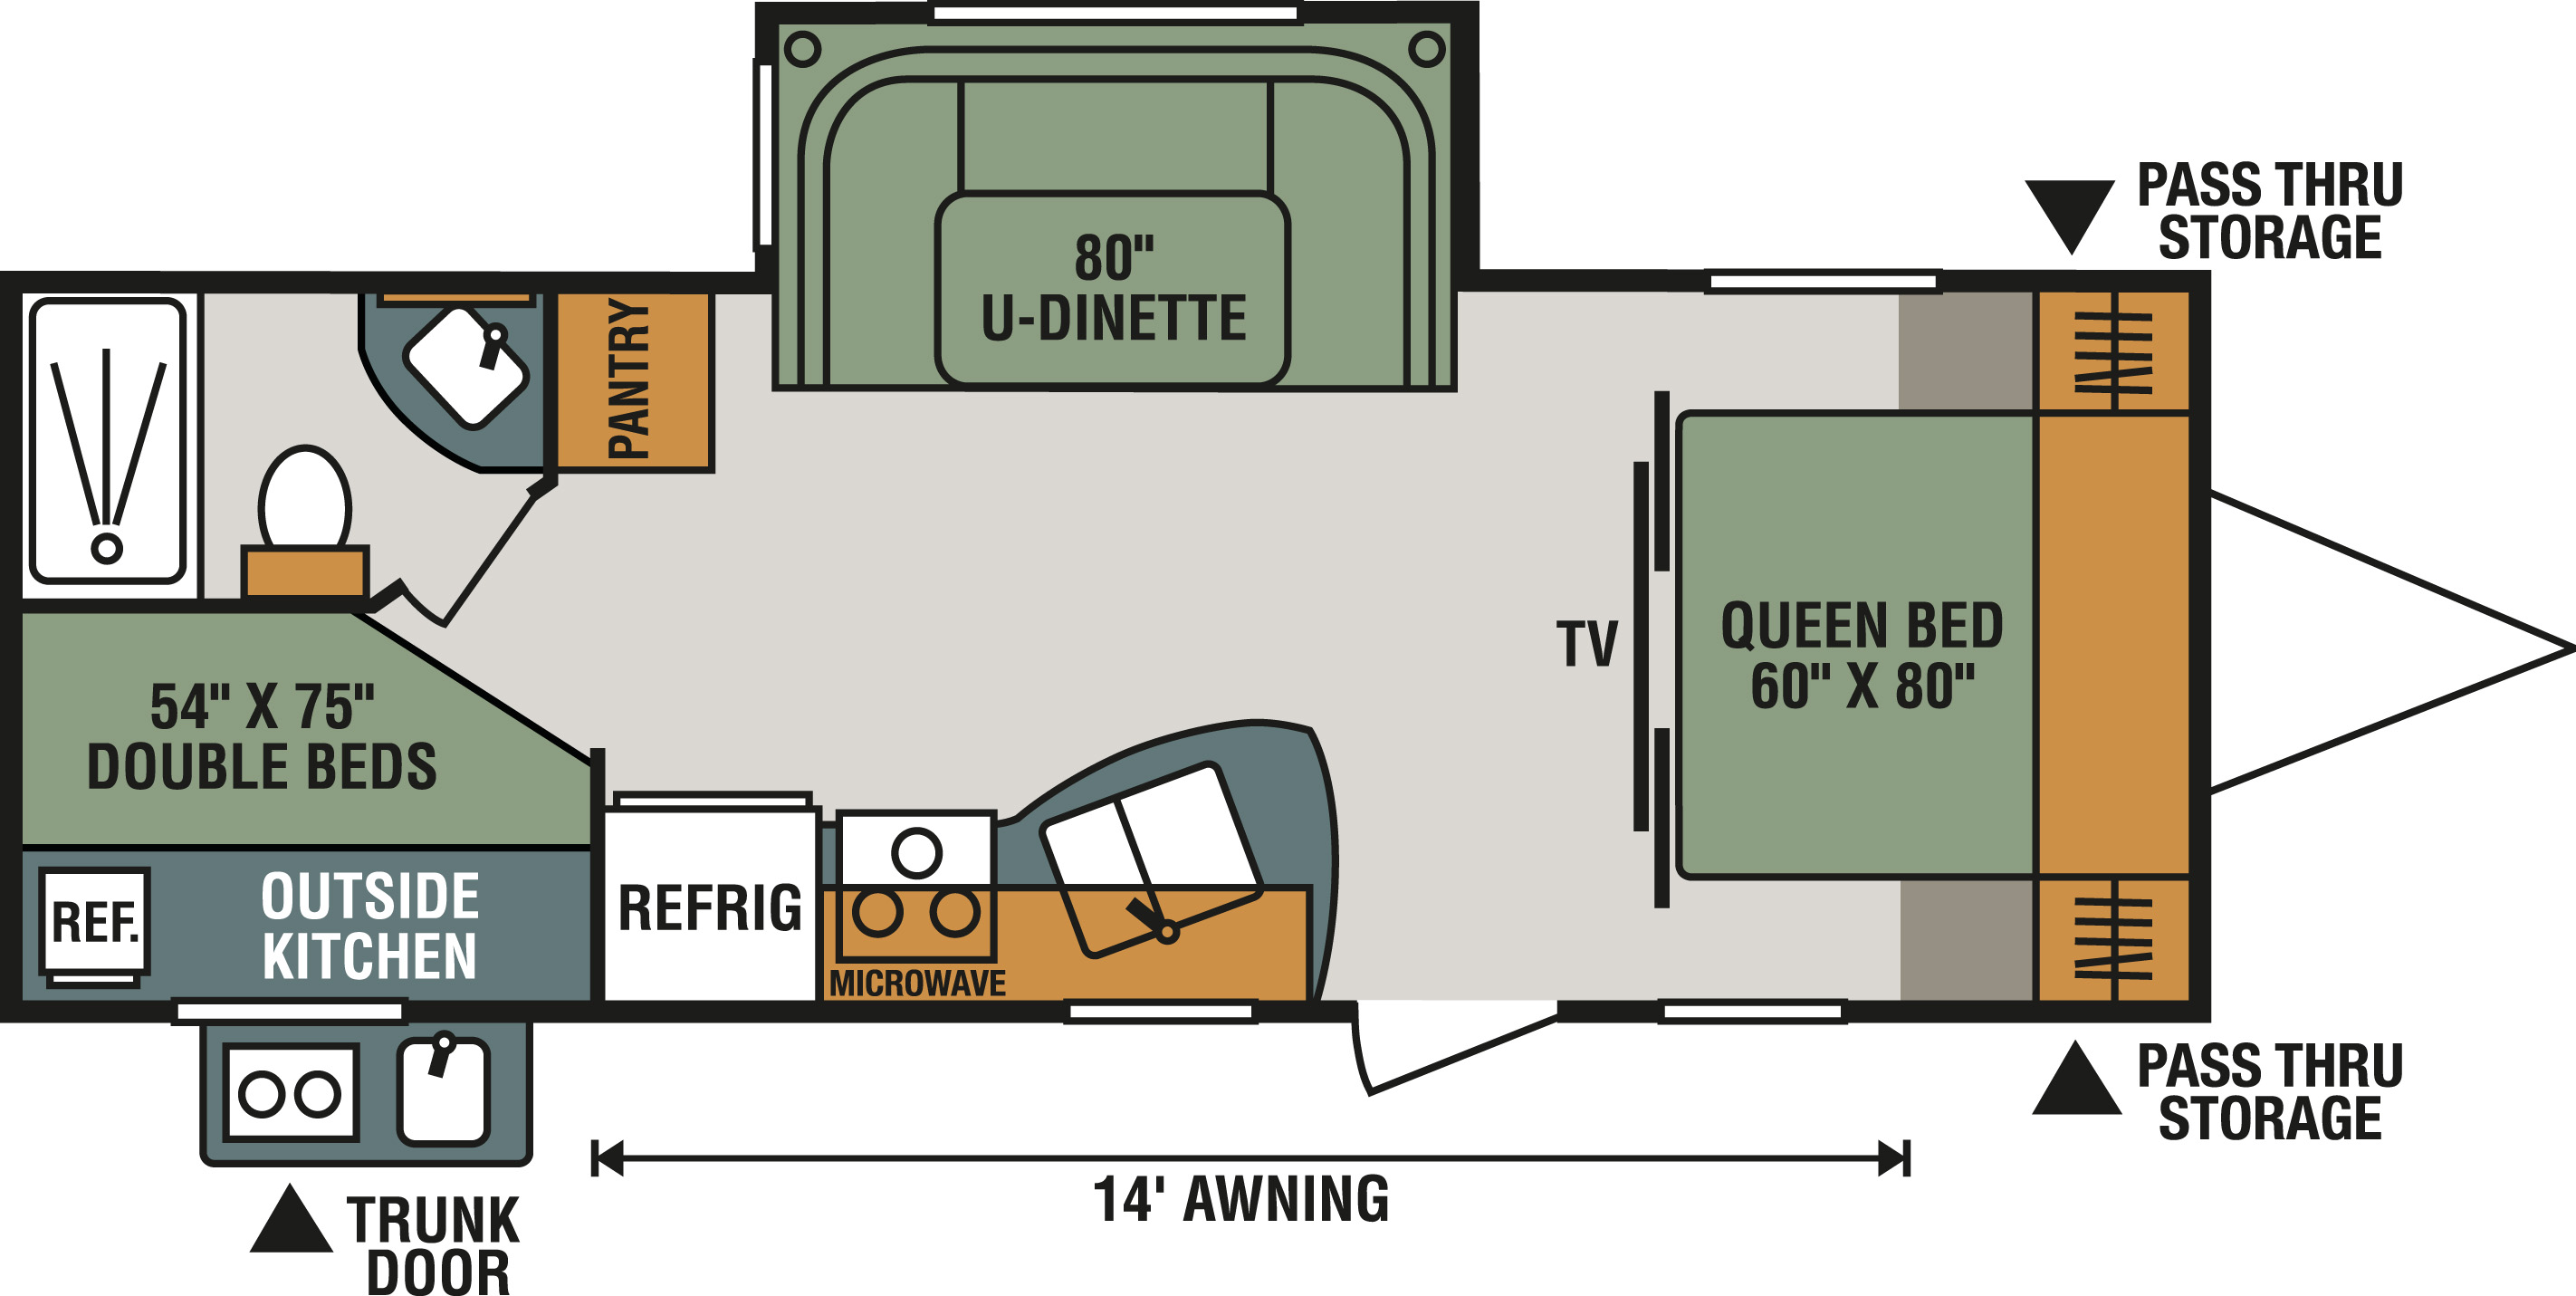 Travel Trailer With No Kitchen Or Beds Floor Plan